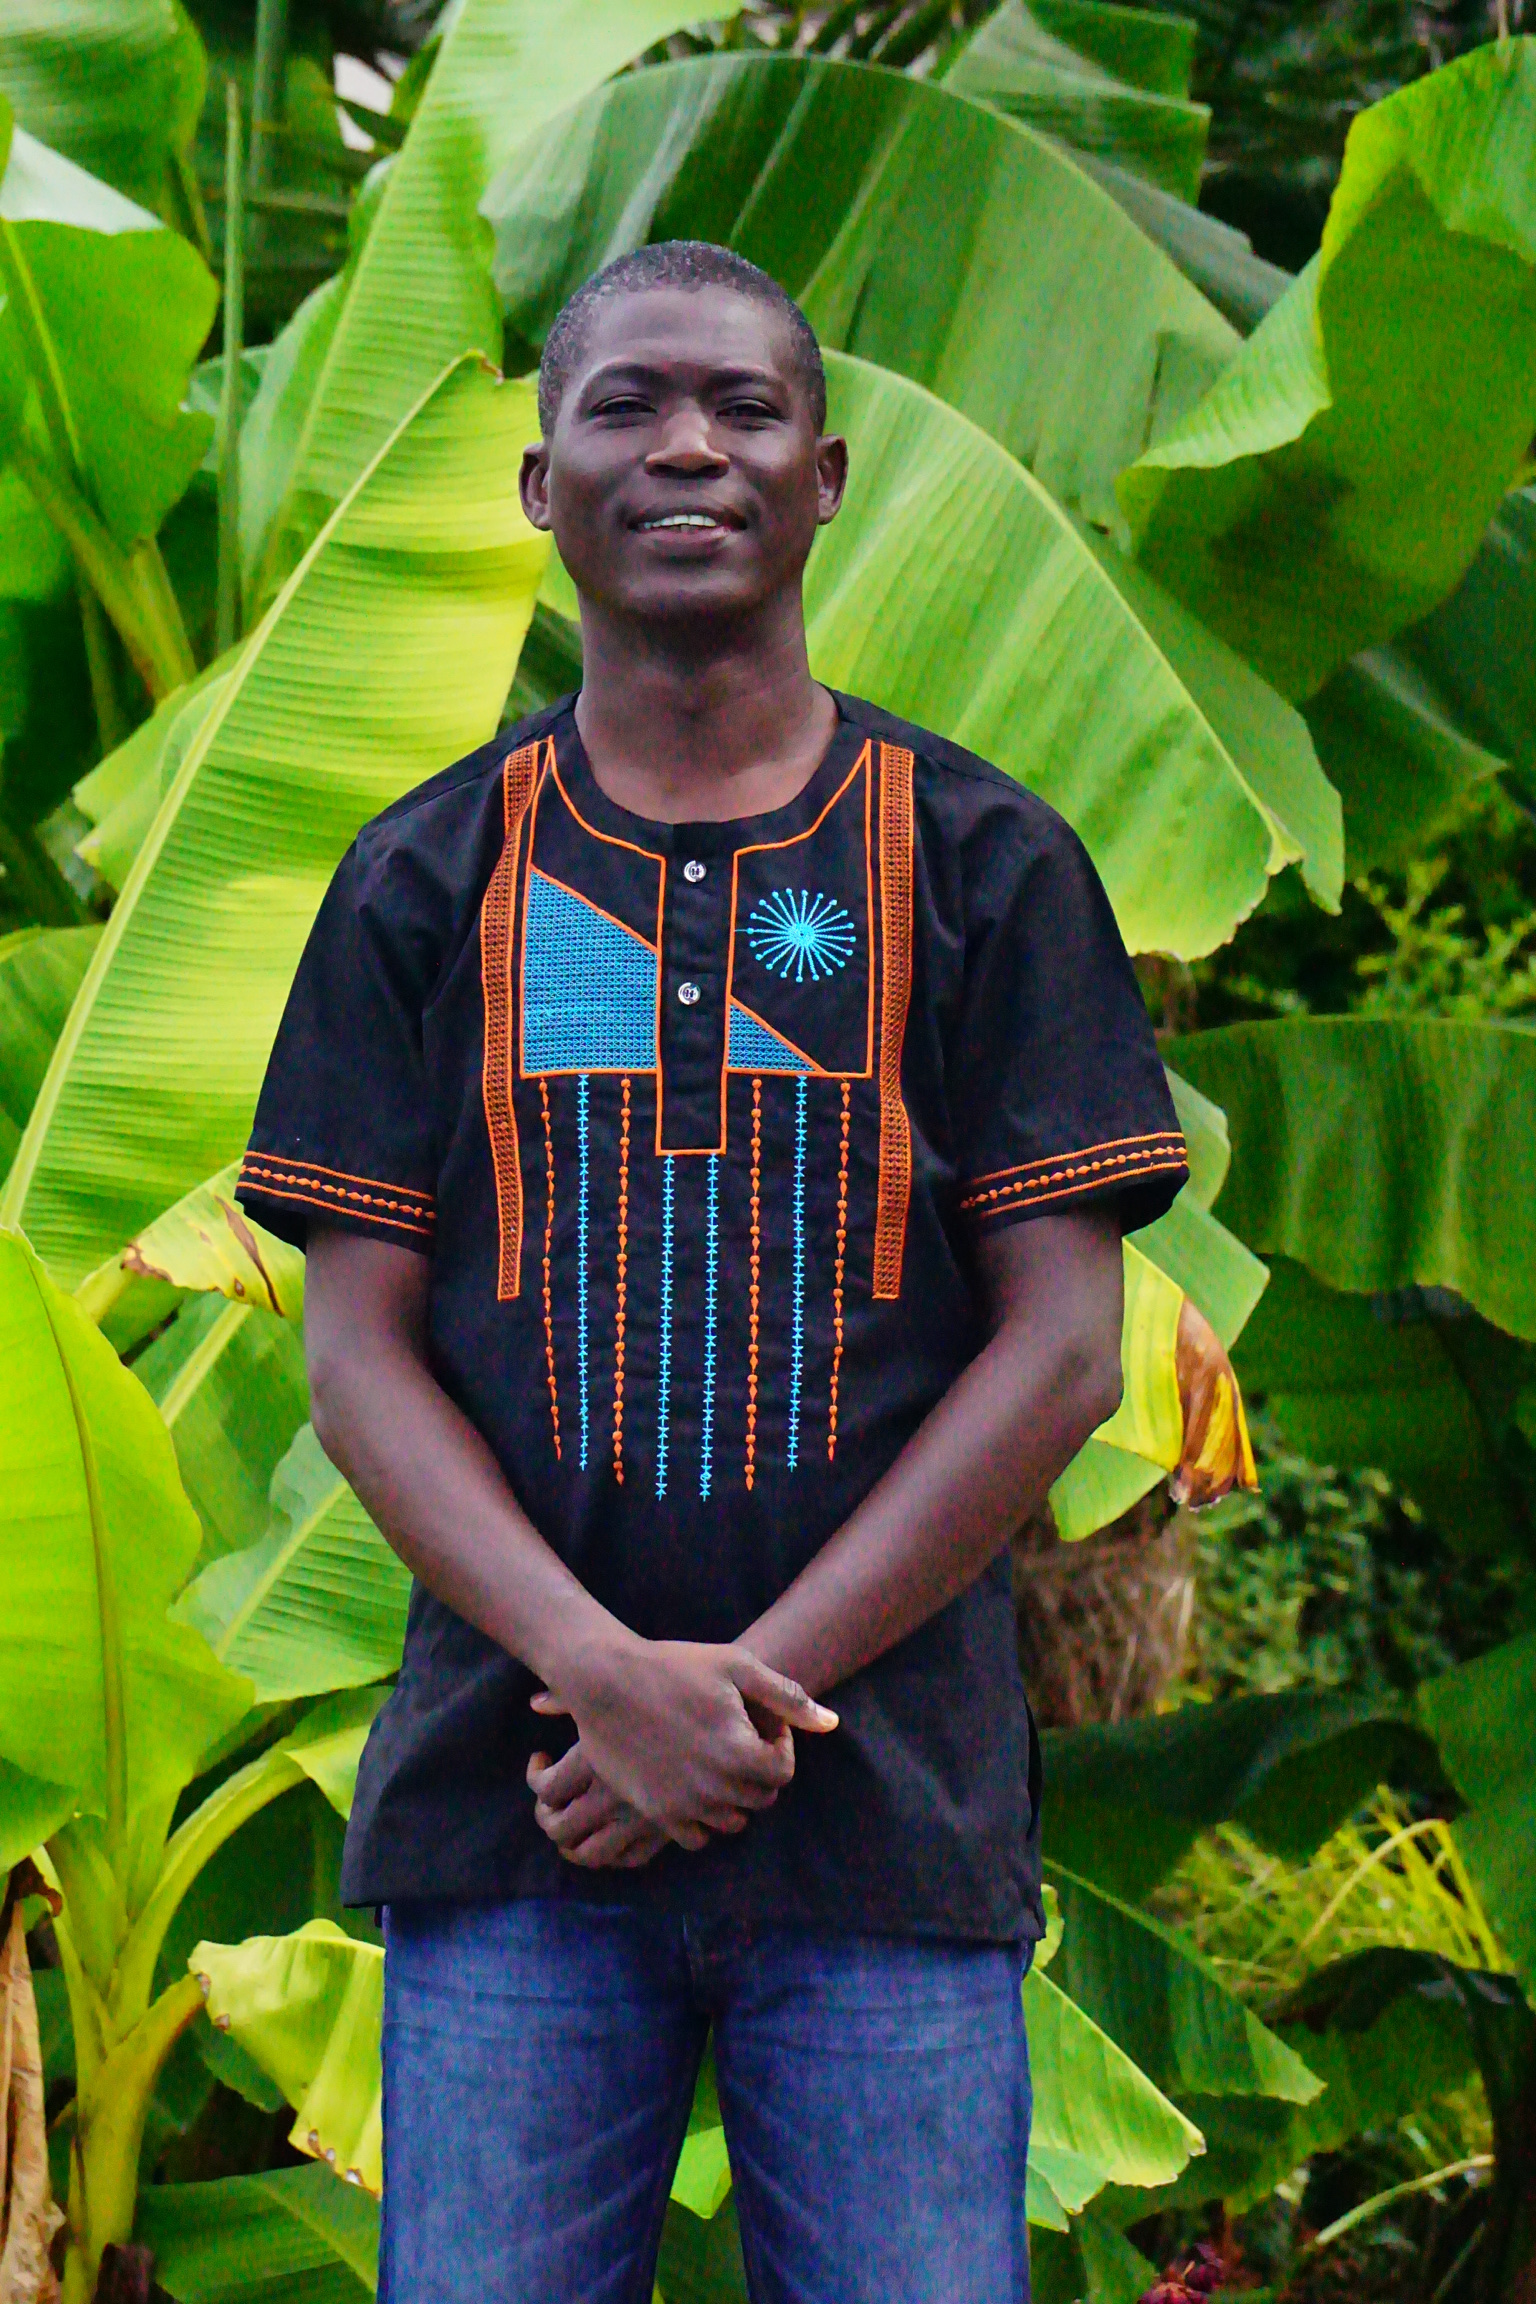 Ladji Koné invites you to travel with Koné Consulting to experience his country, Côte d'Ivoire.